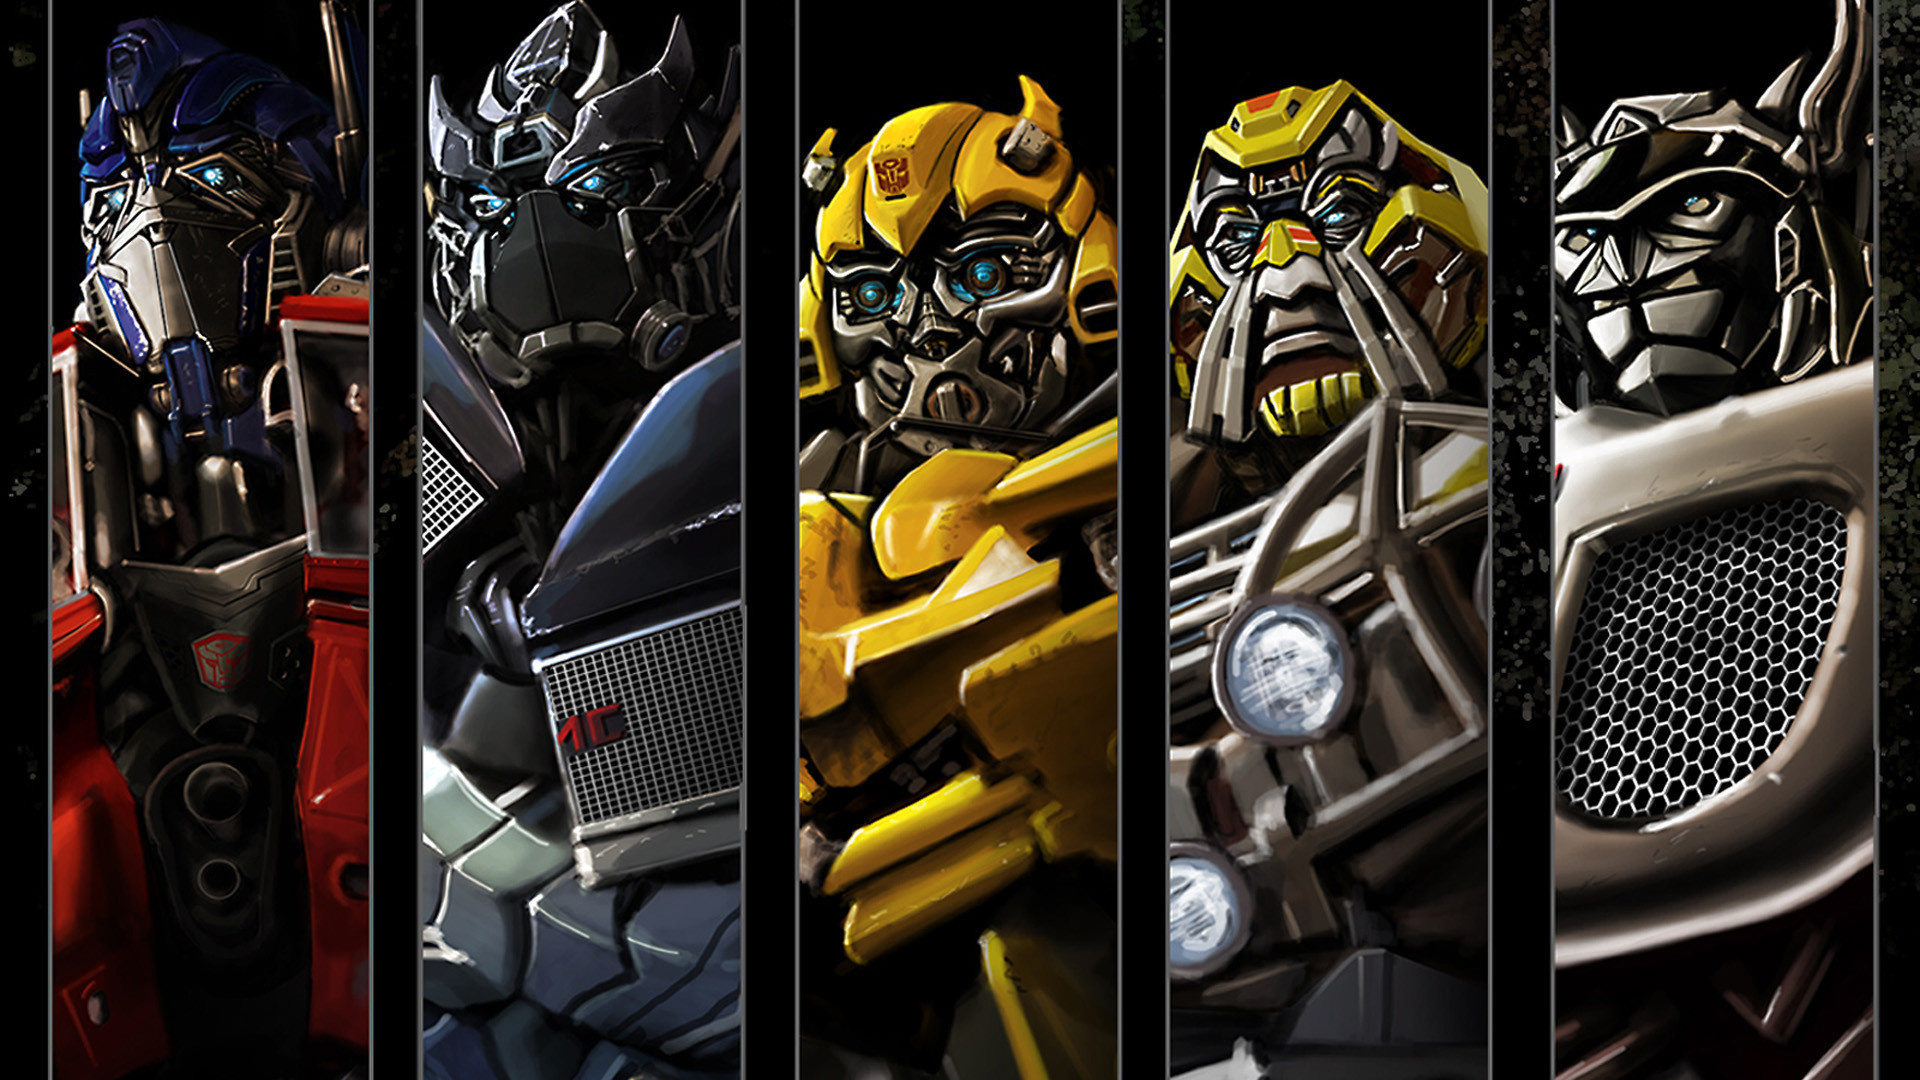 1920x1080 Transformers Bumblebee Wallpapers Wallpaper 1280×1024 Transformers Wallpaper  (42 Wallpapers) | Adorable Wallpapers